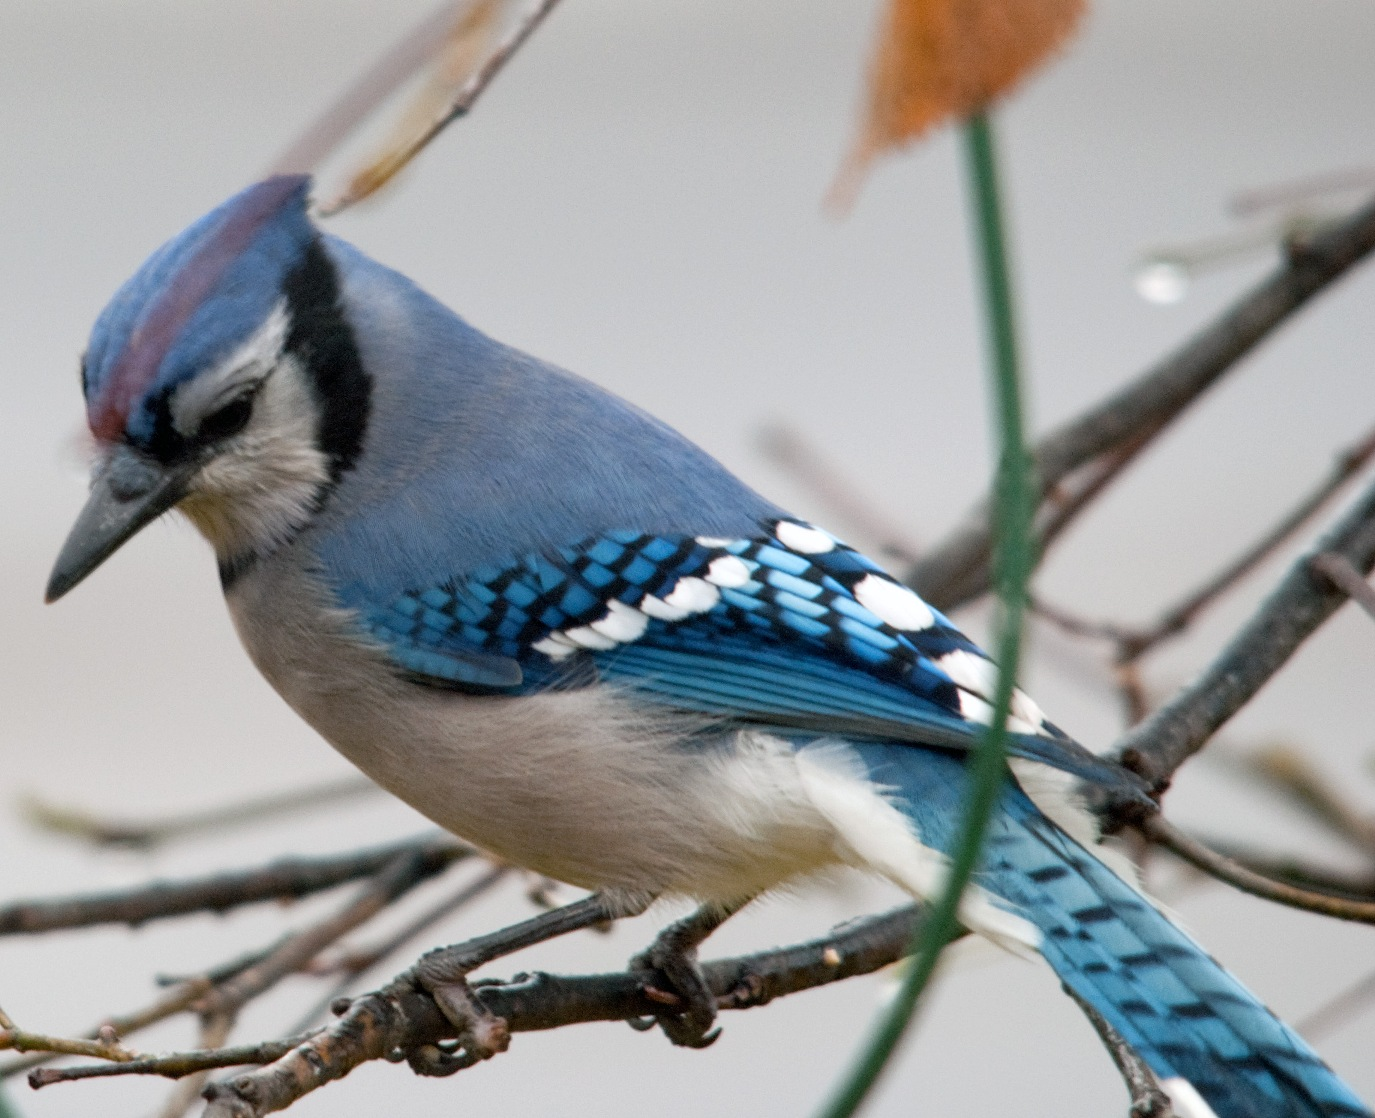 Blue Jay Hd Wallpapers   1375x1118 iWallHD   Wallpaper HD 1375x1118